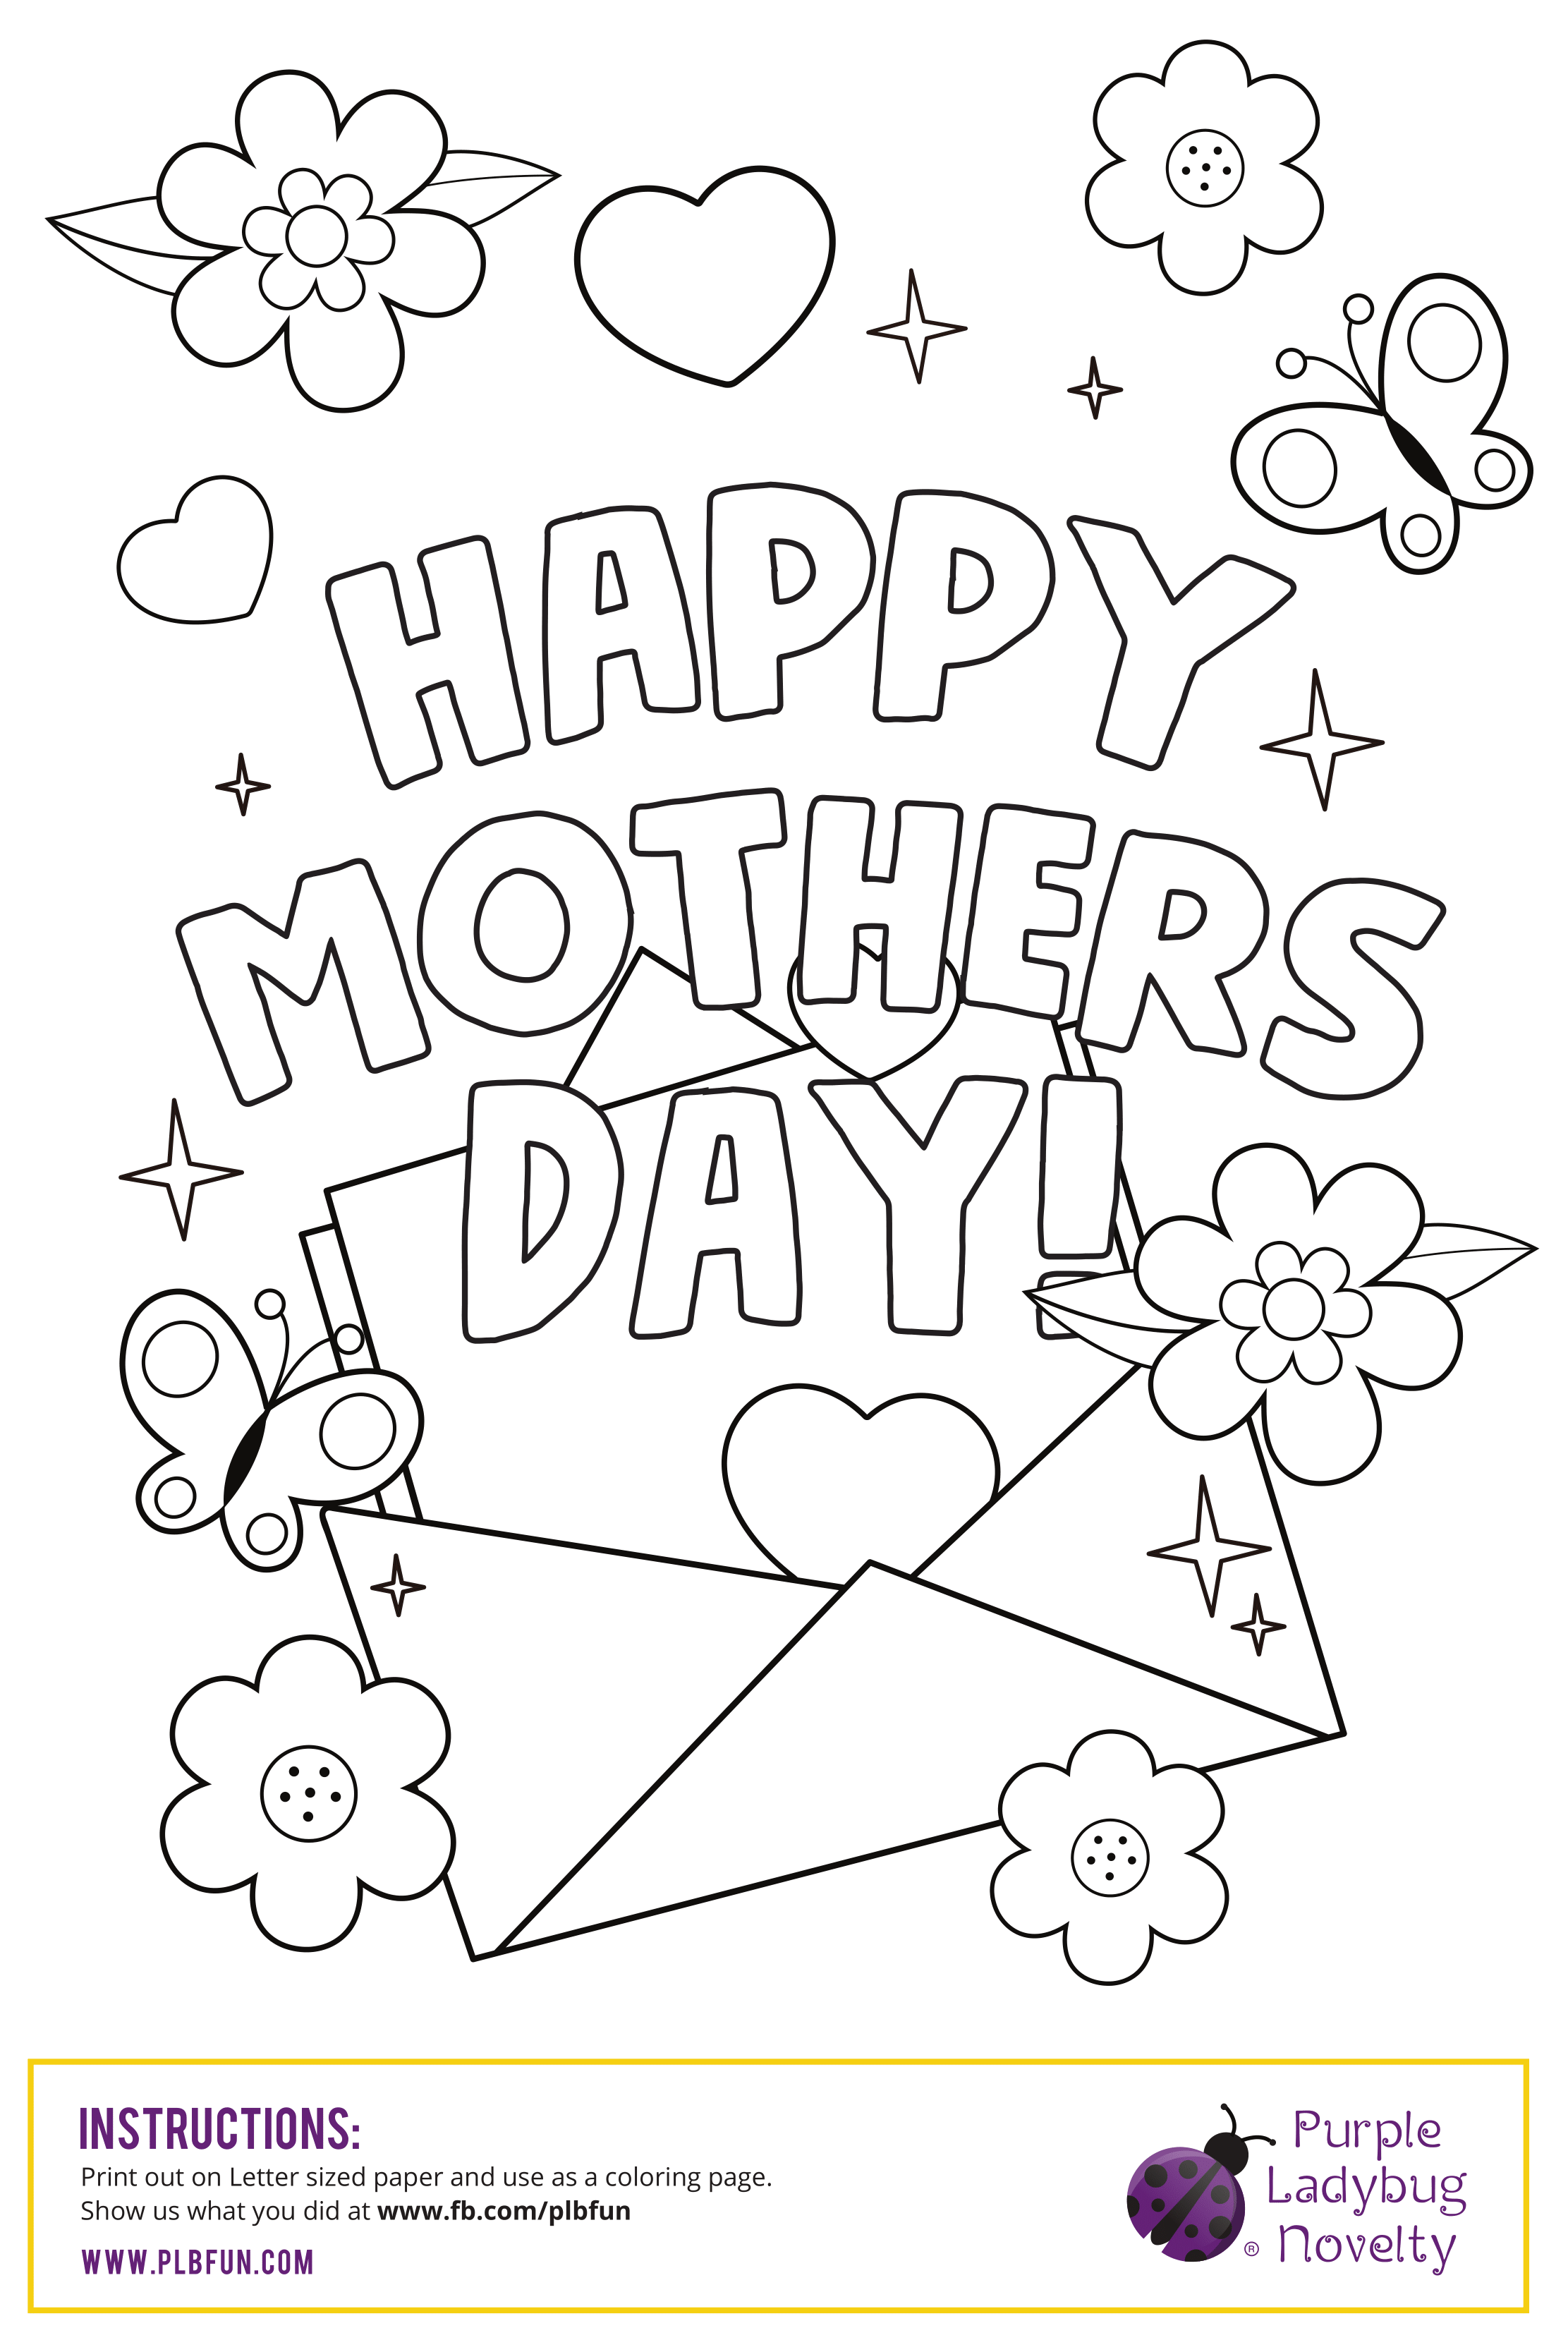 Free Mother S Day Letter Coloring Page Printable By Purple Ladybug Novelty Use Mother S Day Colors Mothers Day Card Template Mothers Day Crafts For Kids